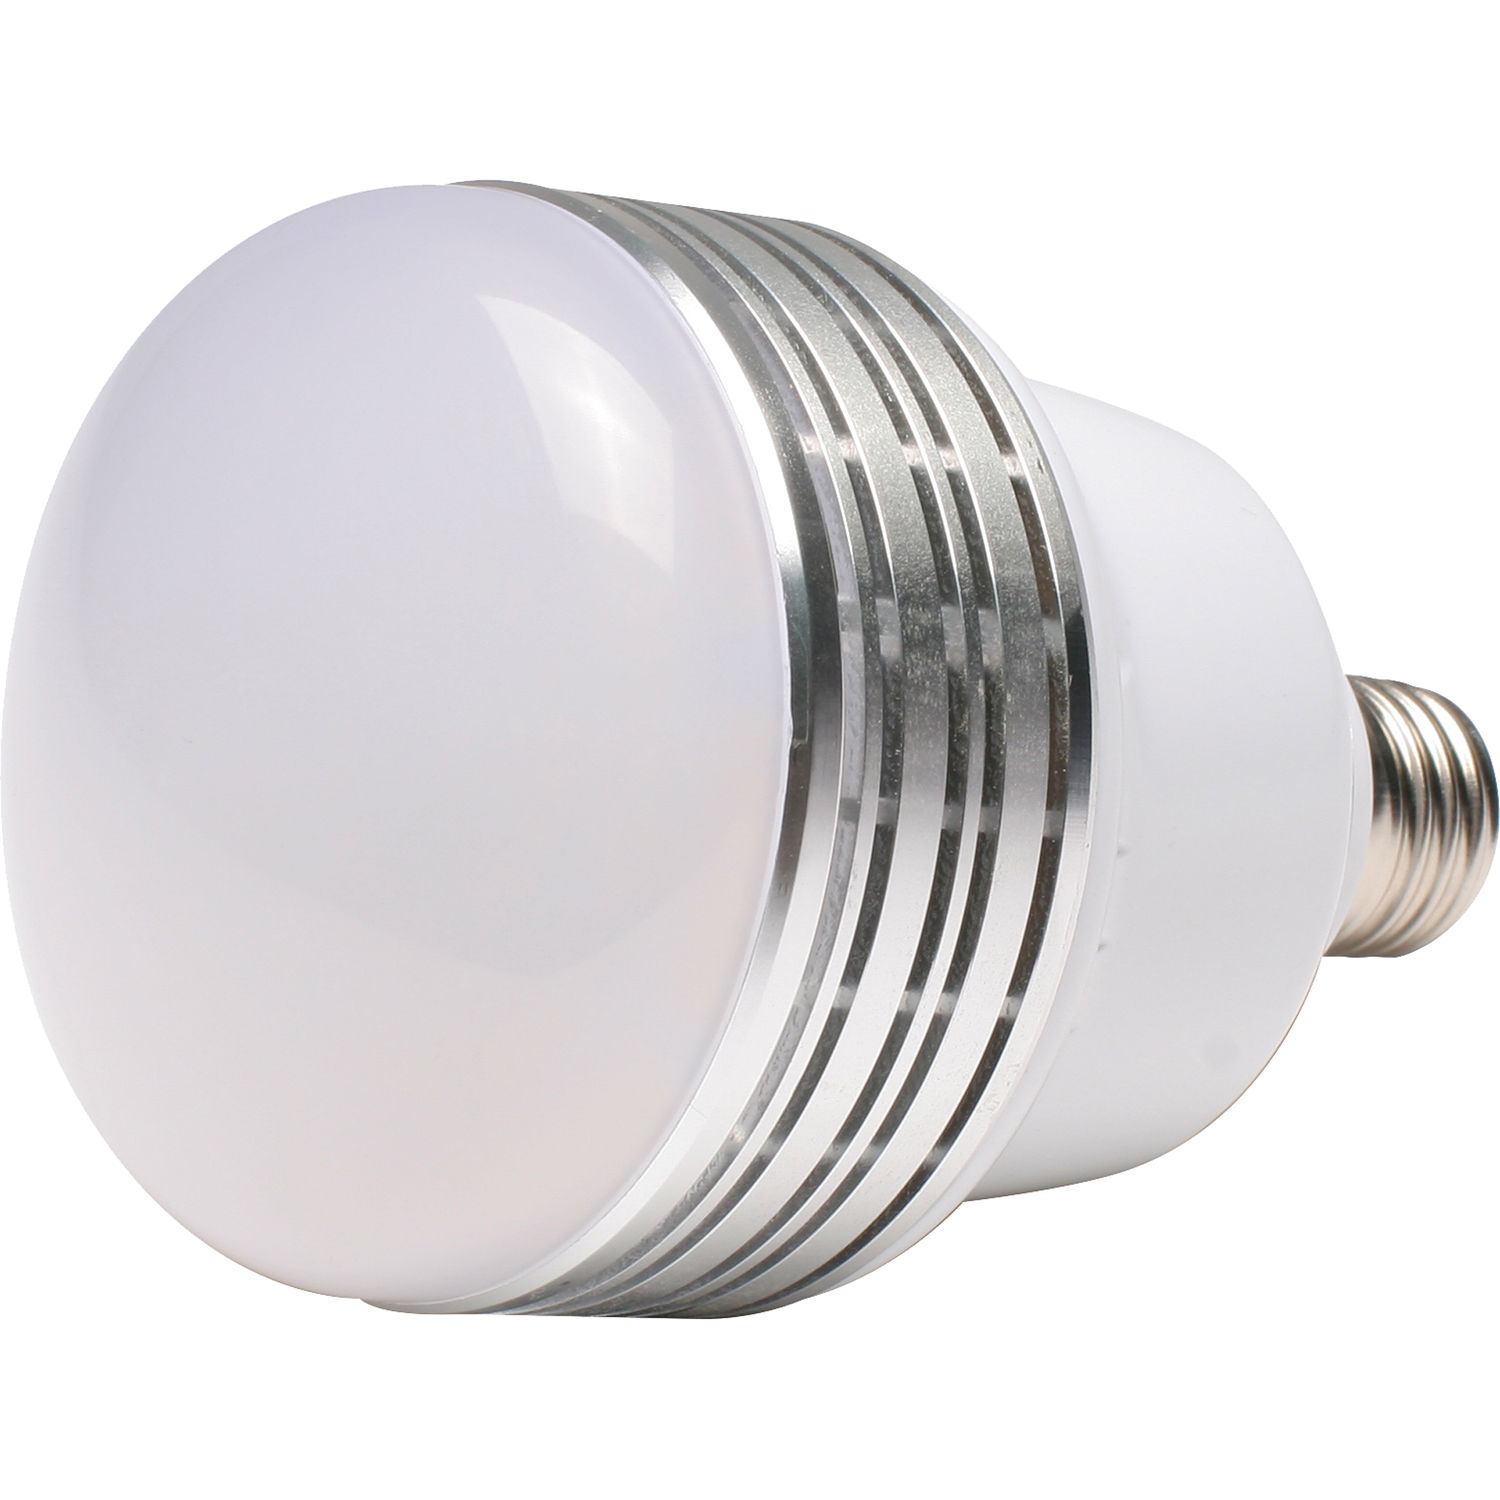 inlight classic low super can products style money save on led bulb watts clever globe watt light lighting bulbs energy